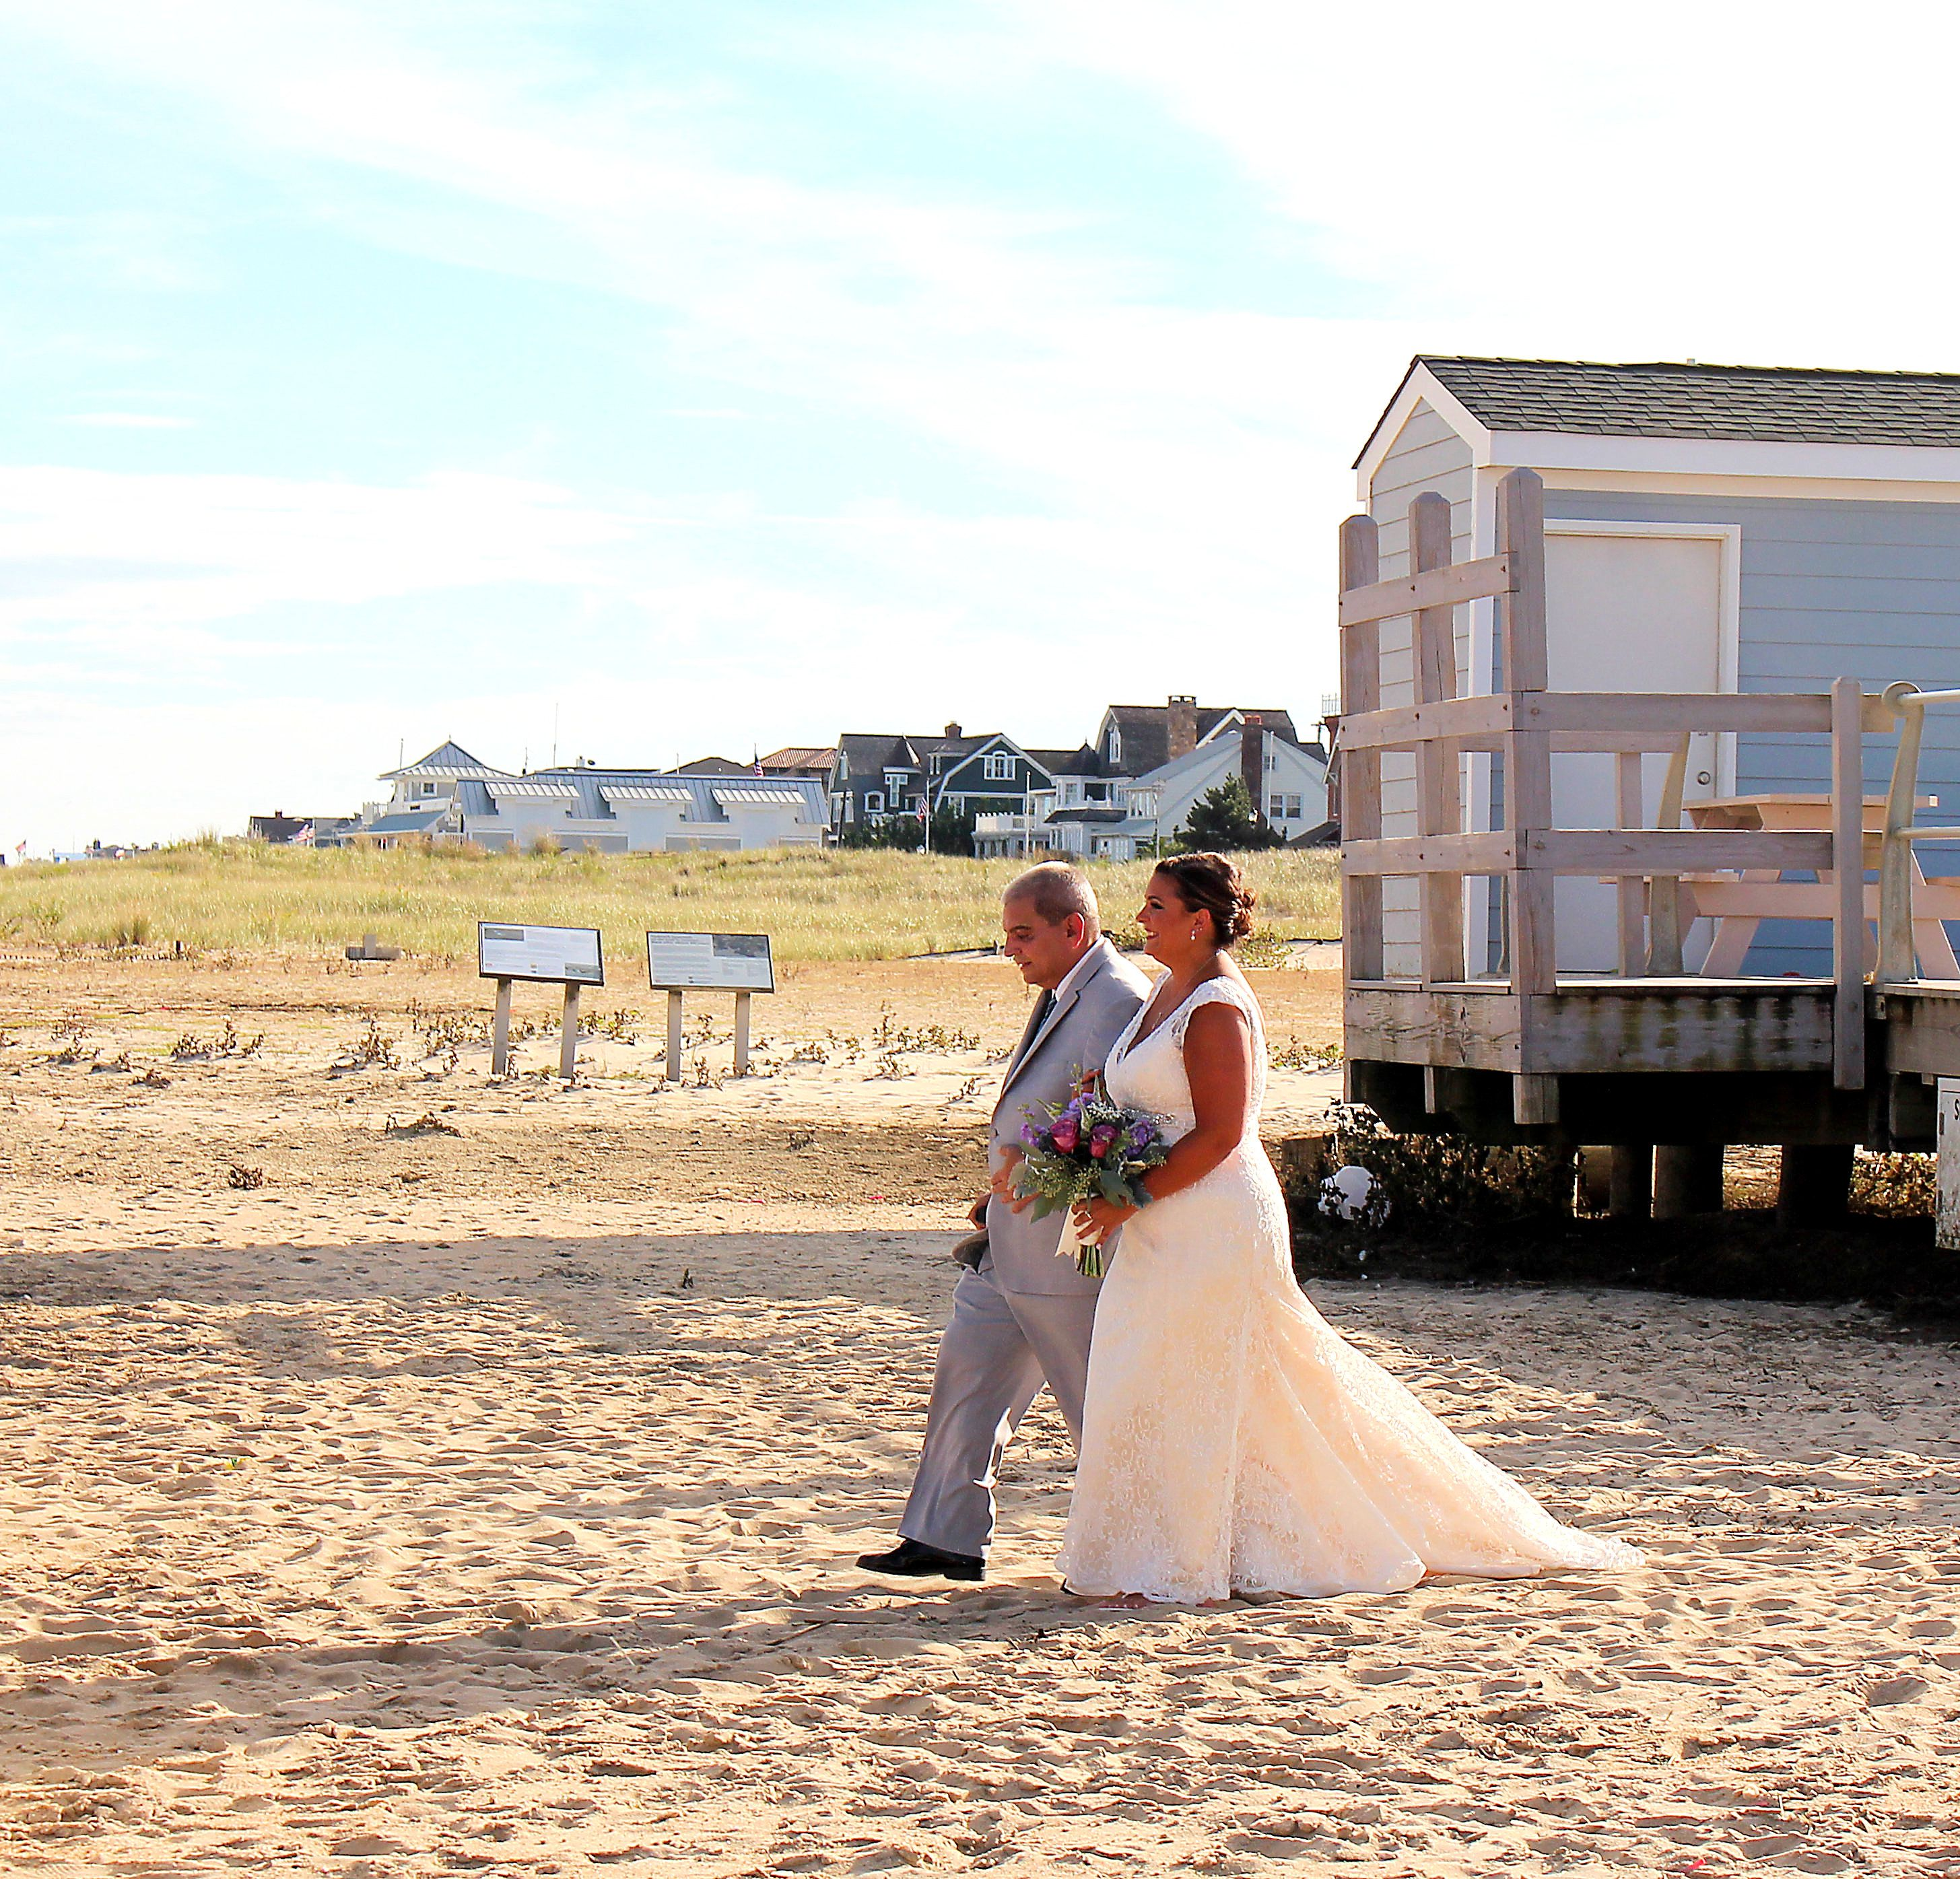 Spring Lake Nj Ceremony Music By Bridal Flute And Violin Wedding Duo